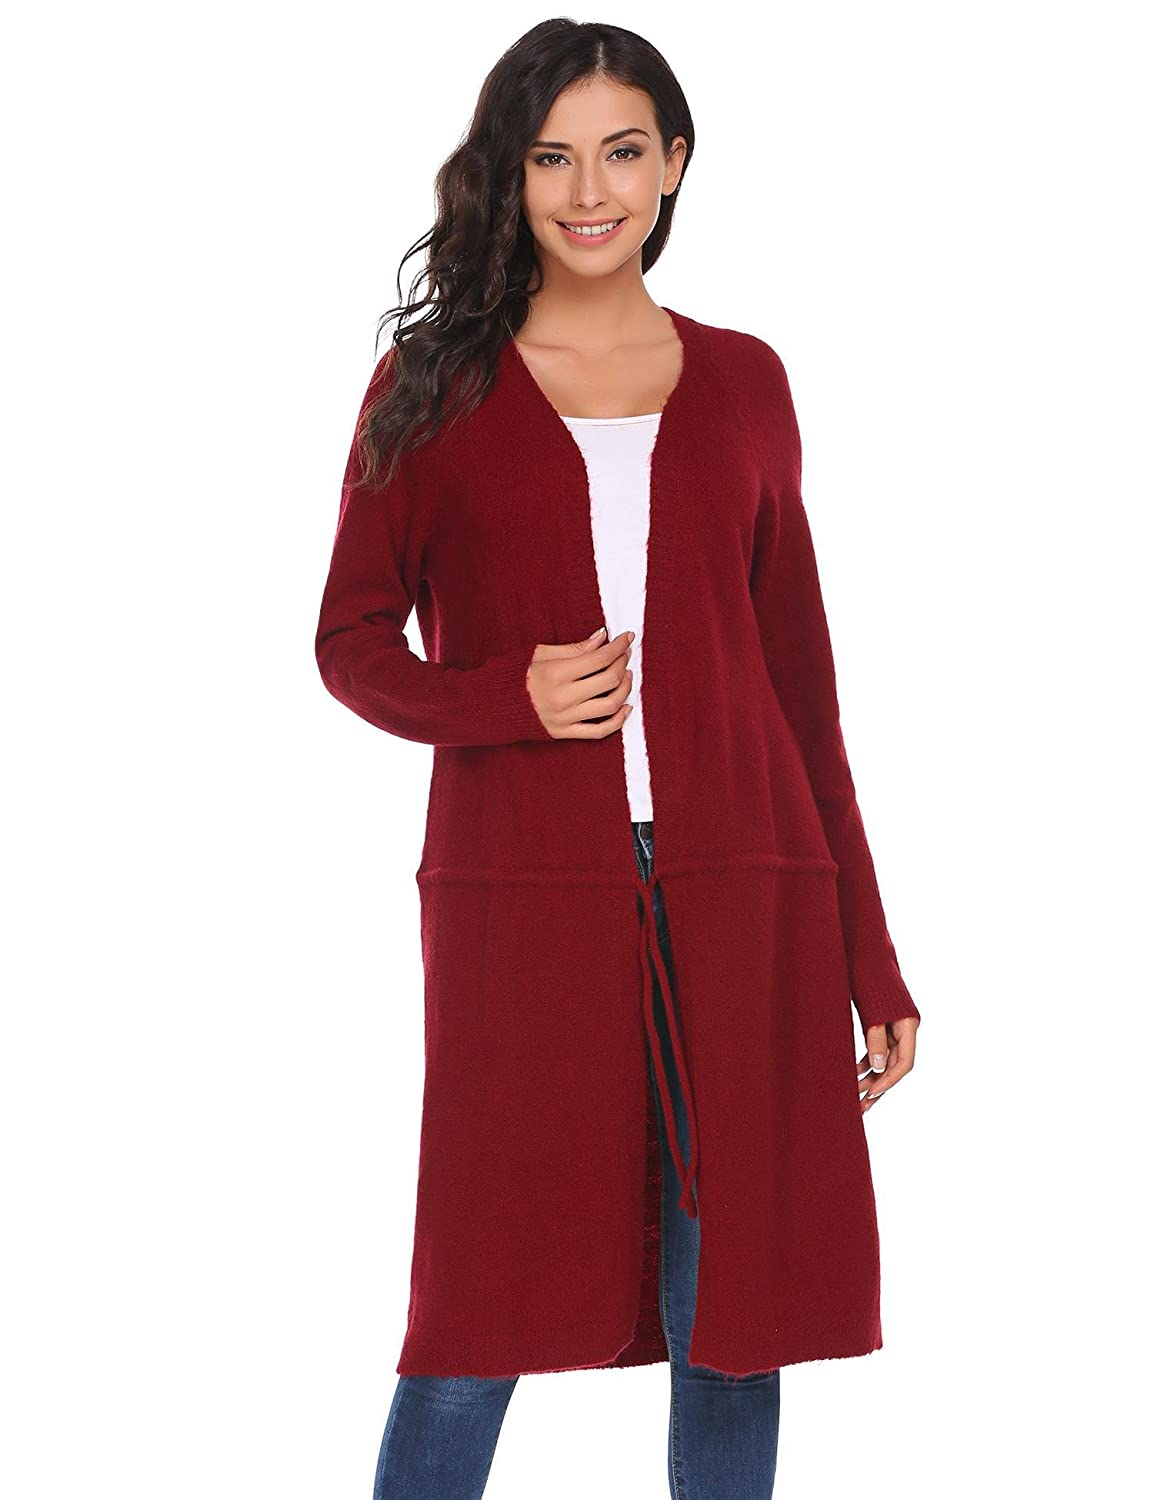 69048d7b29 Zeagoo Women Solid Lightweight Knitted Sweater Open Front Long Trench Coat  Cardigan at Amazon Women s Clothing store